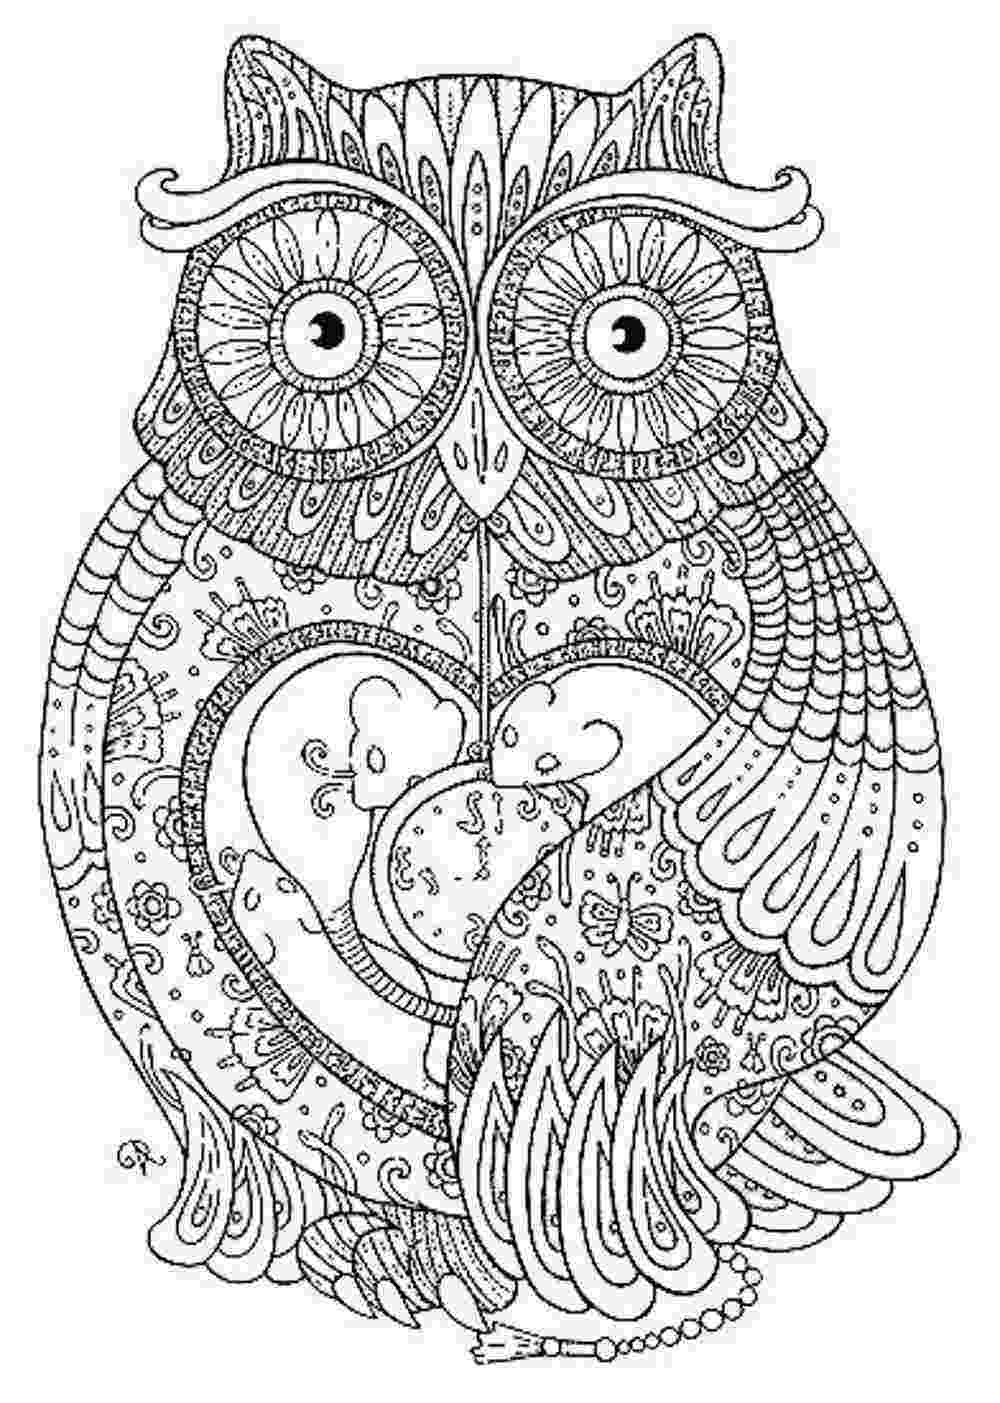 coloring pages animals fox coloring pages animal coloring pages fox coloring pages animals coloring